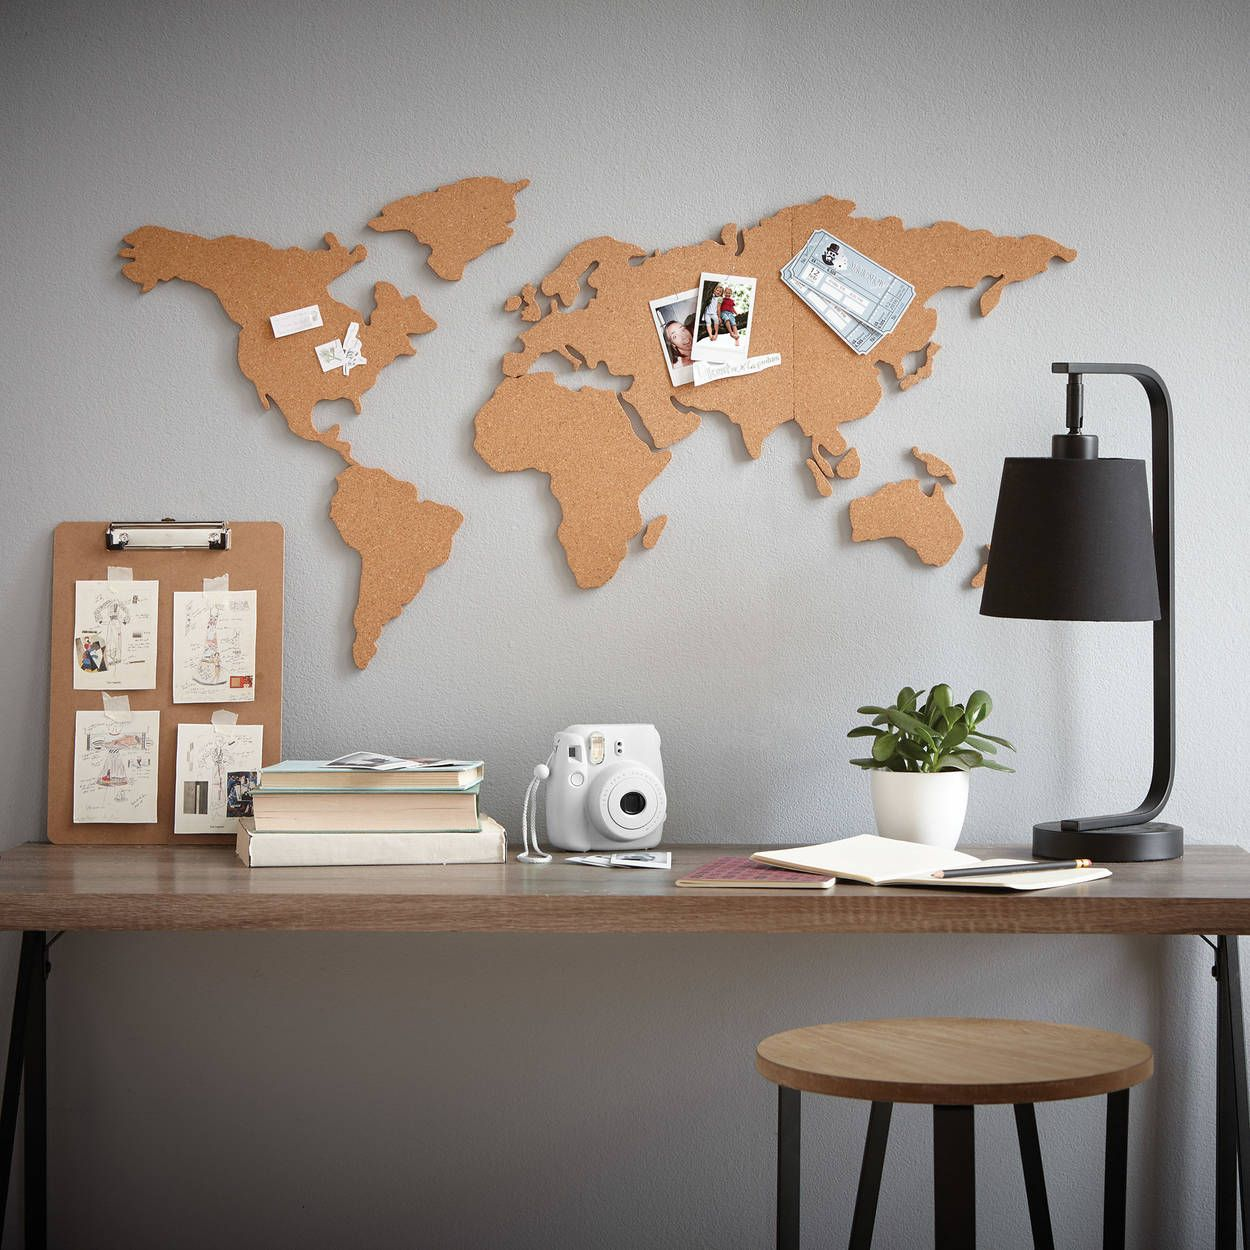 Liège Décoration Murale Cork World Map Wall Sticker En 2019 Idées Déco World Map Wall